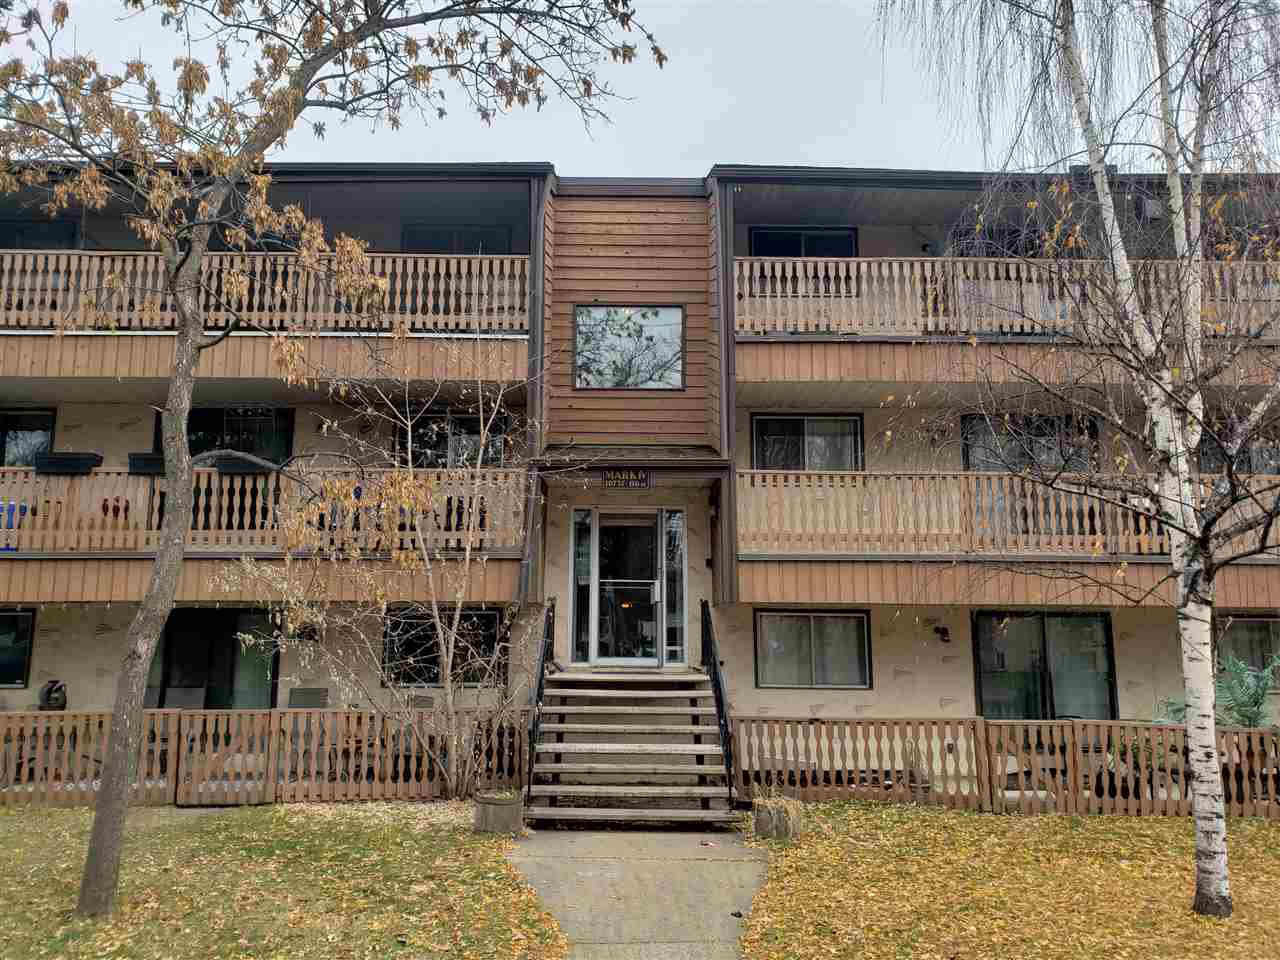 Main Photo: 7 10737 116 Street in Edmonton: Zone 08 Condo for sale : MLS®# E4179305